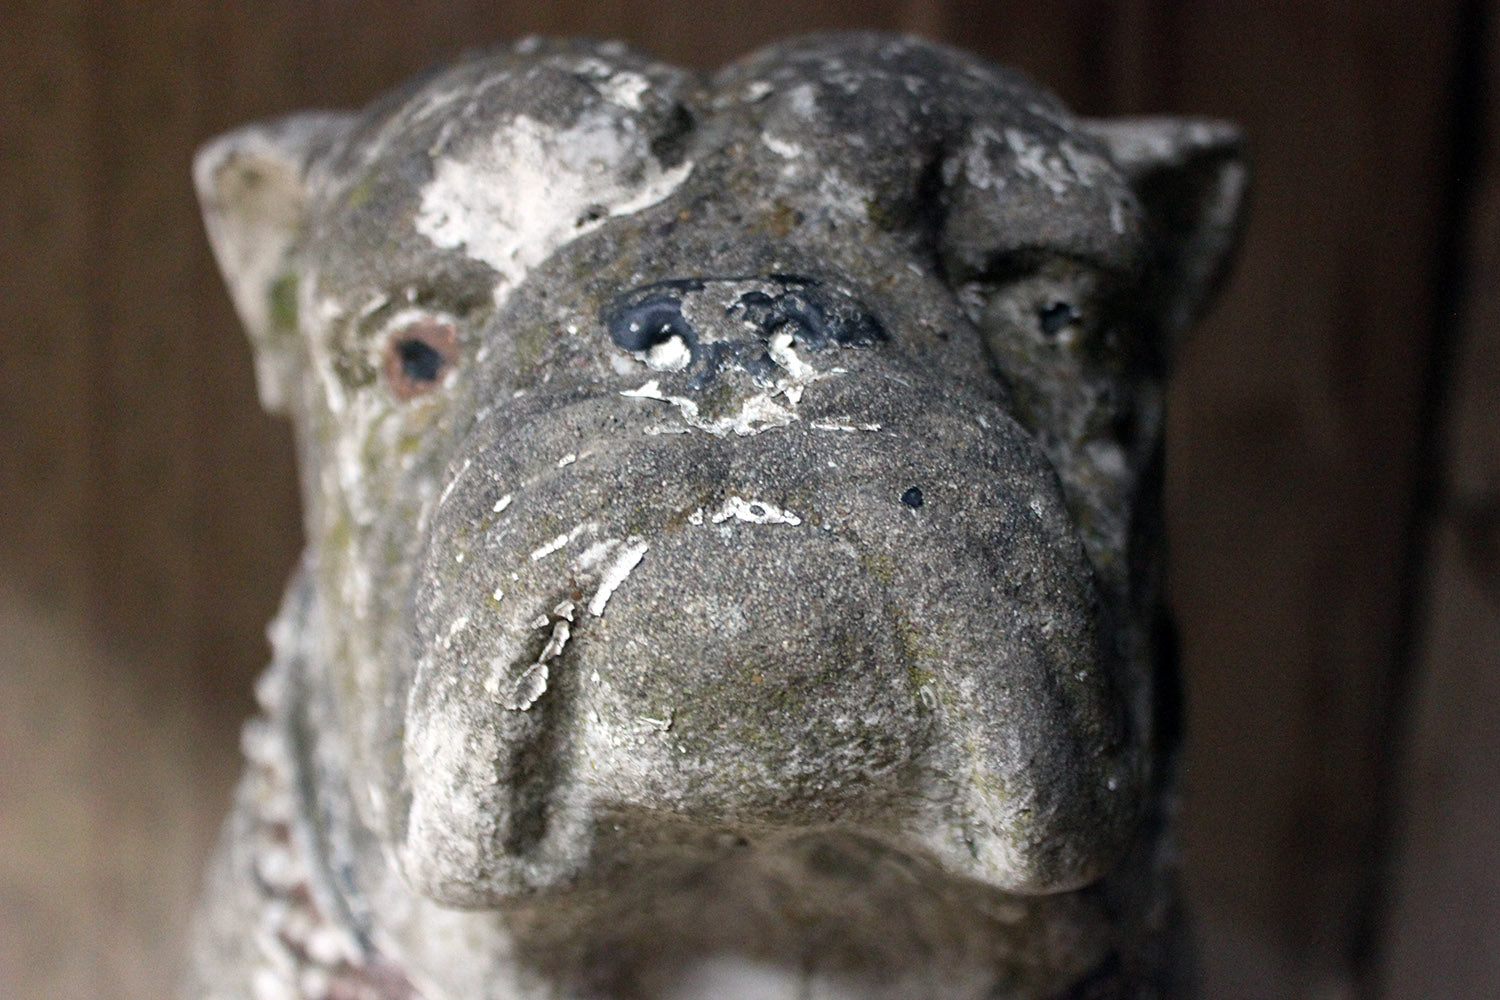 A Decorative Mid 20thC Painted Cast Stone Bulldog c.1940-50